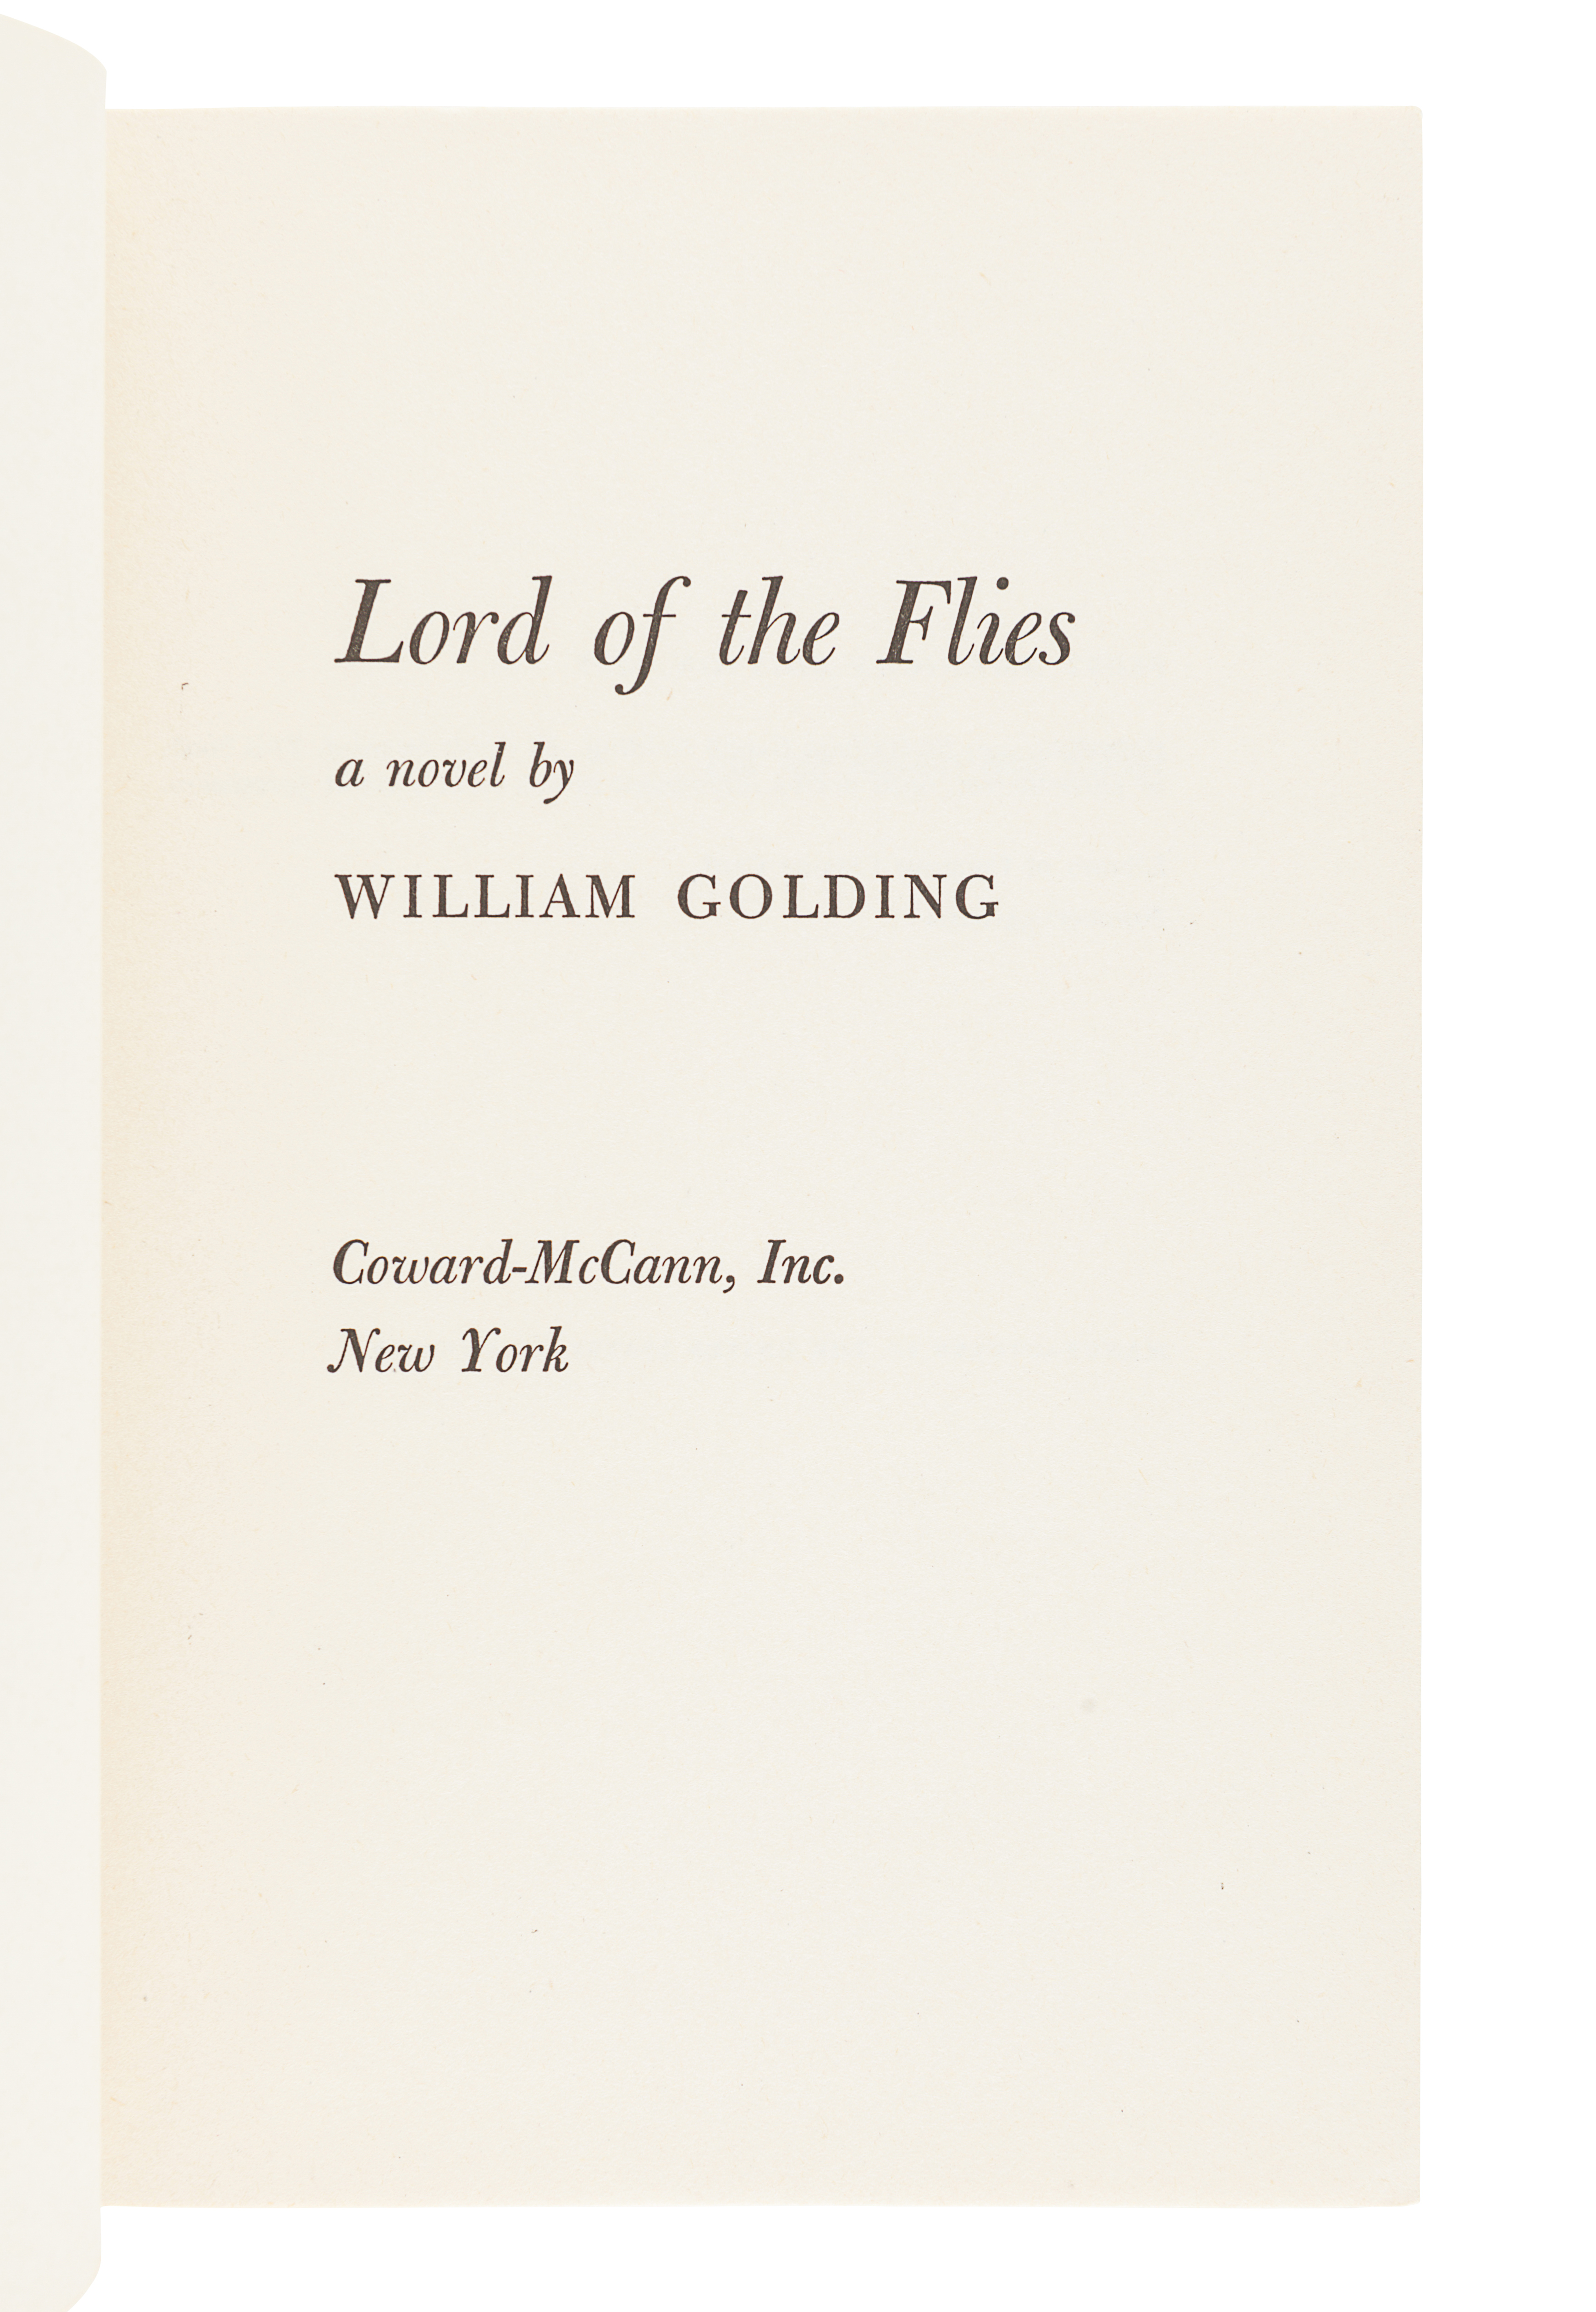 GOLDING, William (1911-1993). Lord of the Flies. New York: Coward-McCann, Inc., 1955. - Image 3 of 3